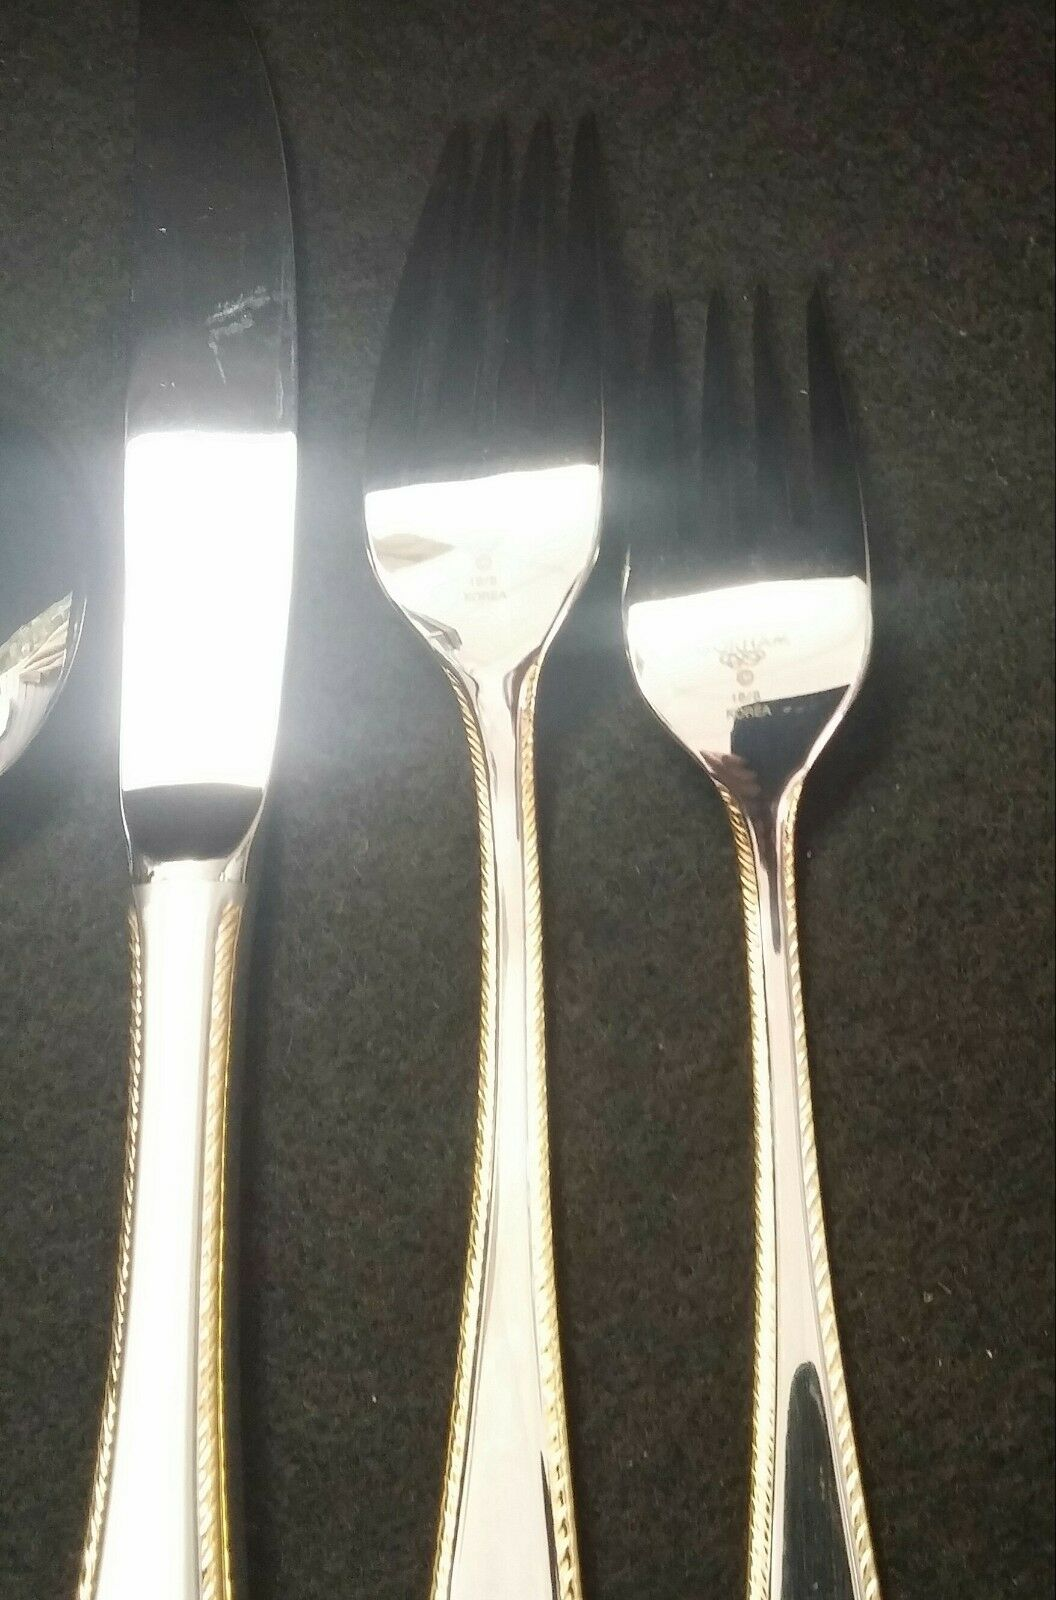 GORHAM Gold RIBBON EDGE EDGE EDGE FROSTED STAINLESS 5 PIECE PLACE SETTING KOREA 558e6c